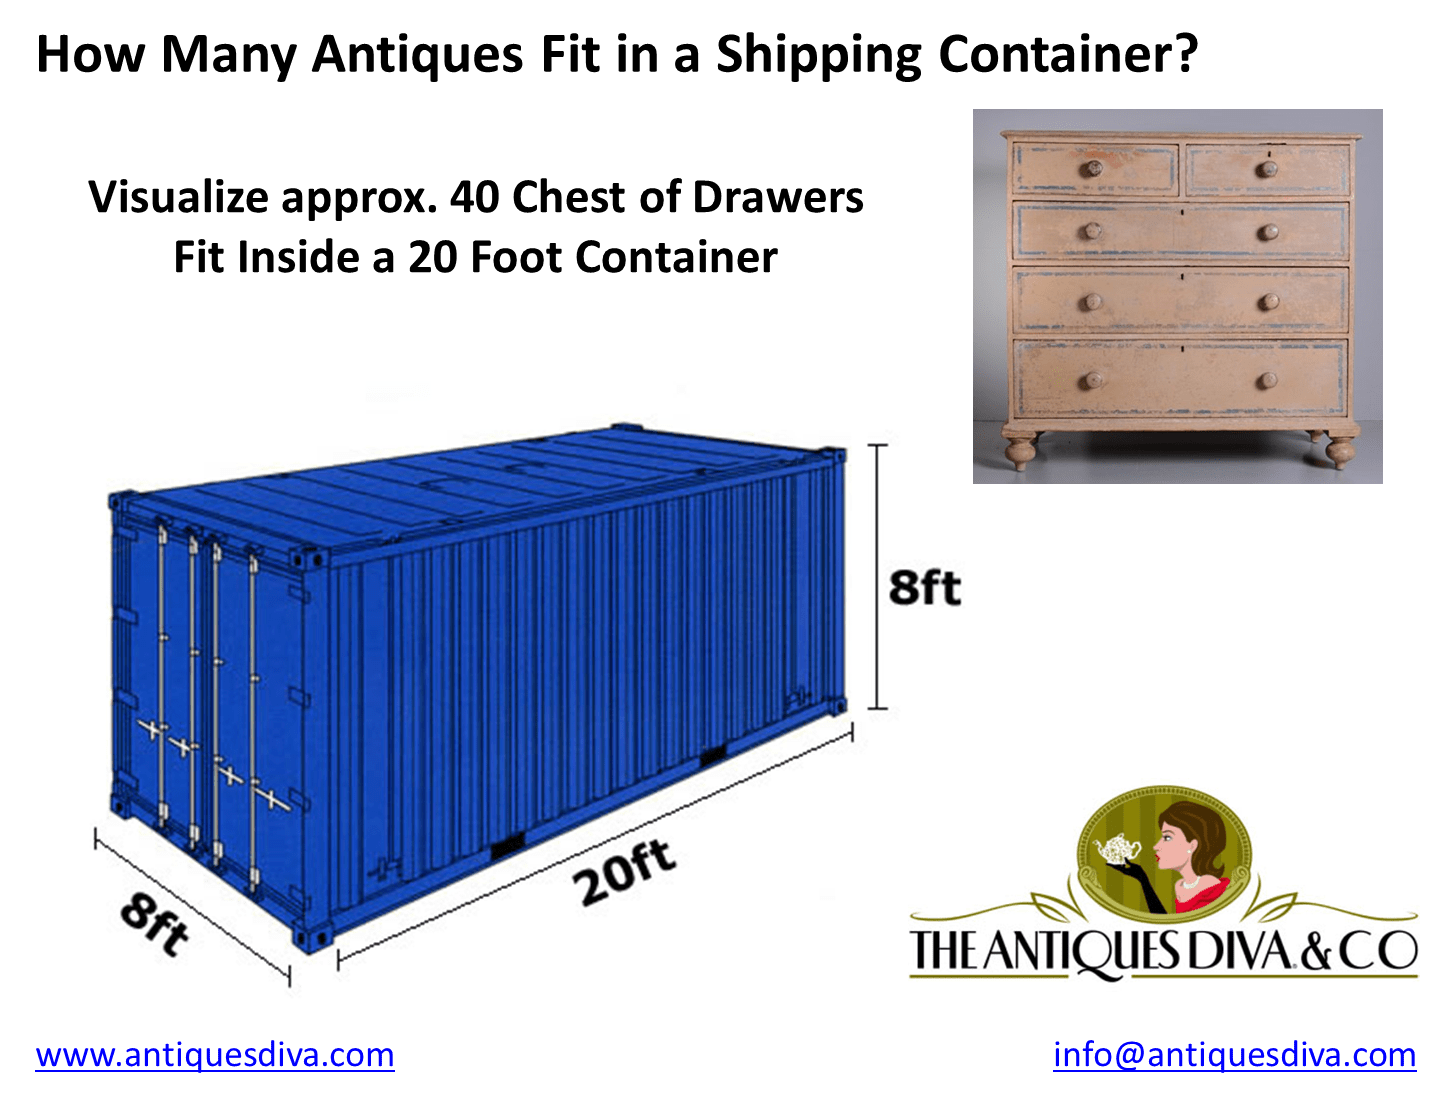 Best Kitchen Gallery: How Much Does It Cost To Fill A Container With Antiques The of 20 Foot Shipping Container Cost on rachelxblog.com